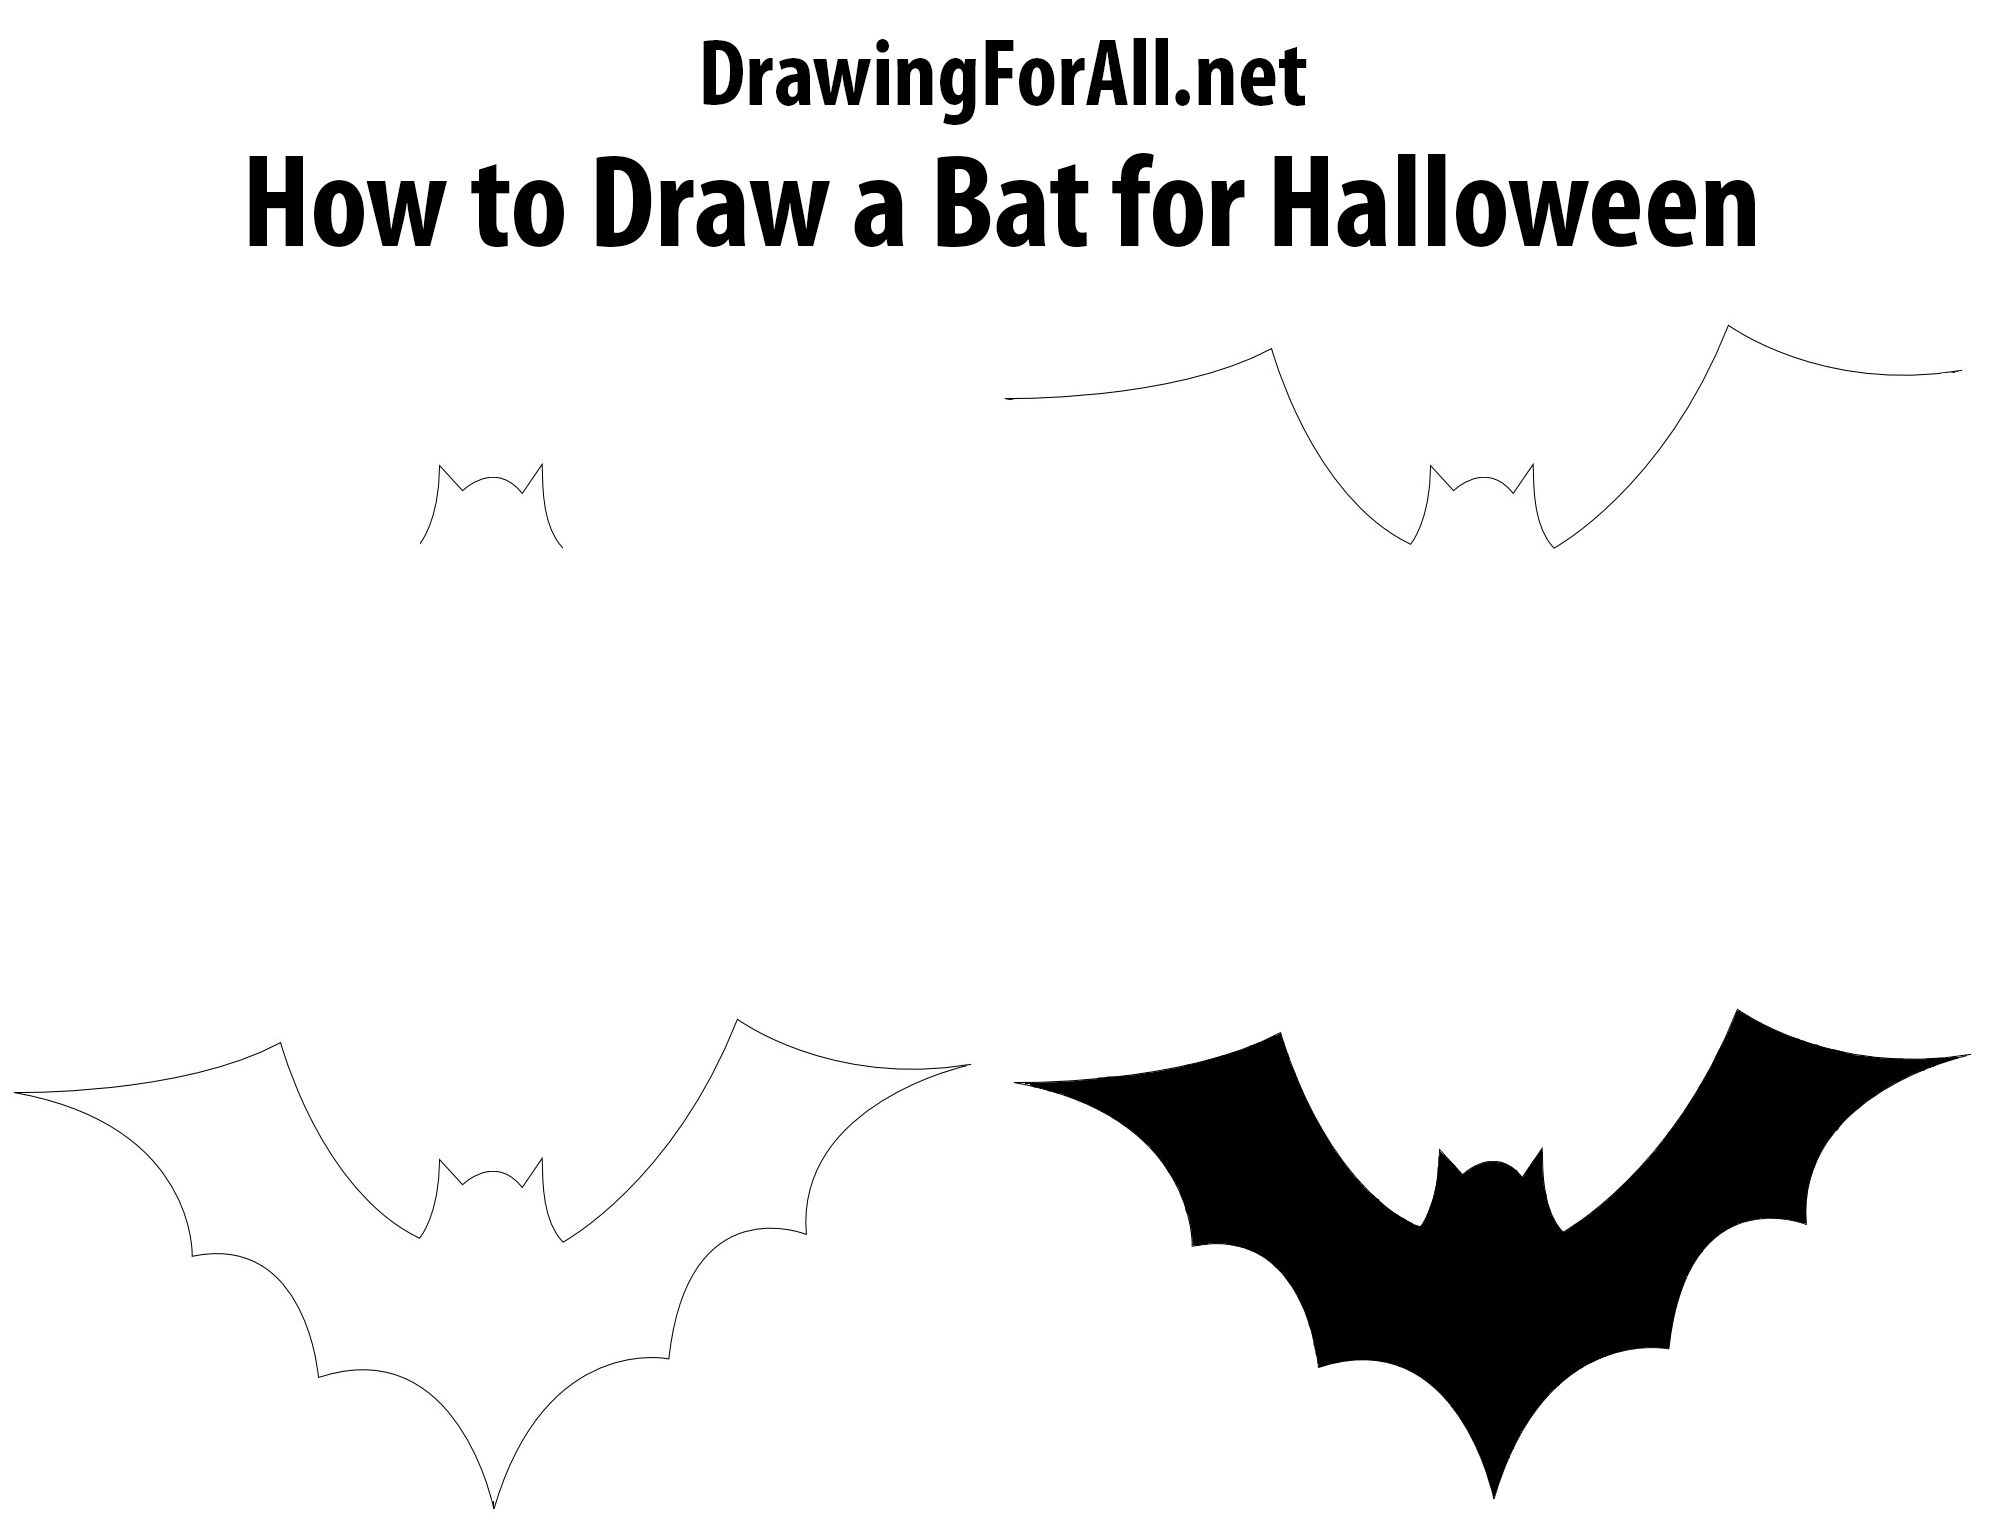 How To Draw A Bat For Halloween Draw A Bat Halloween Doodle